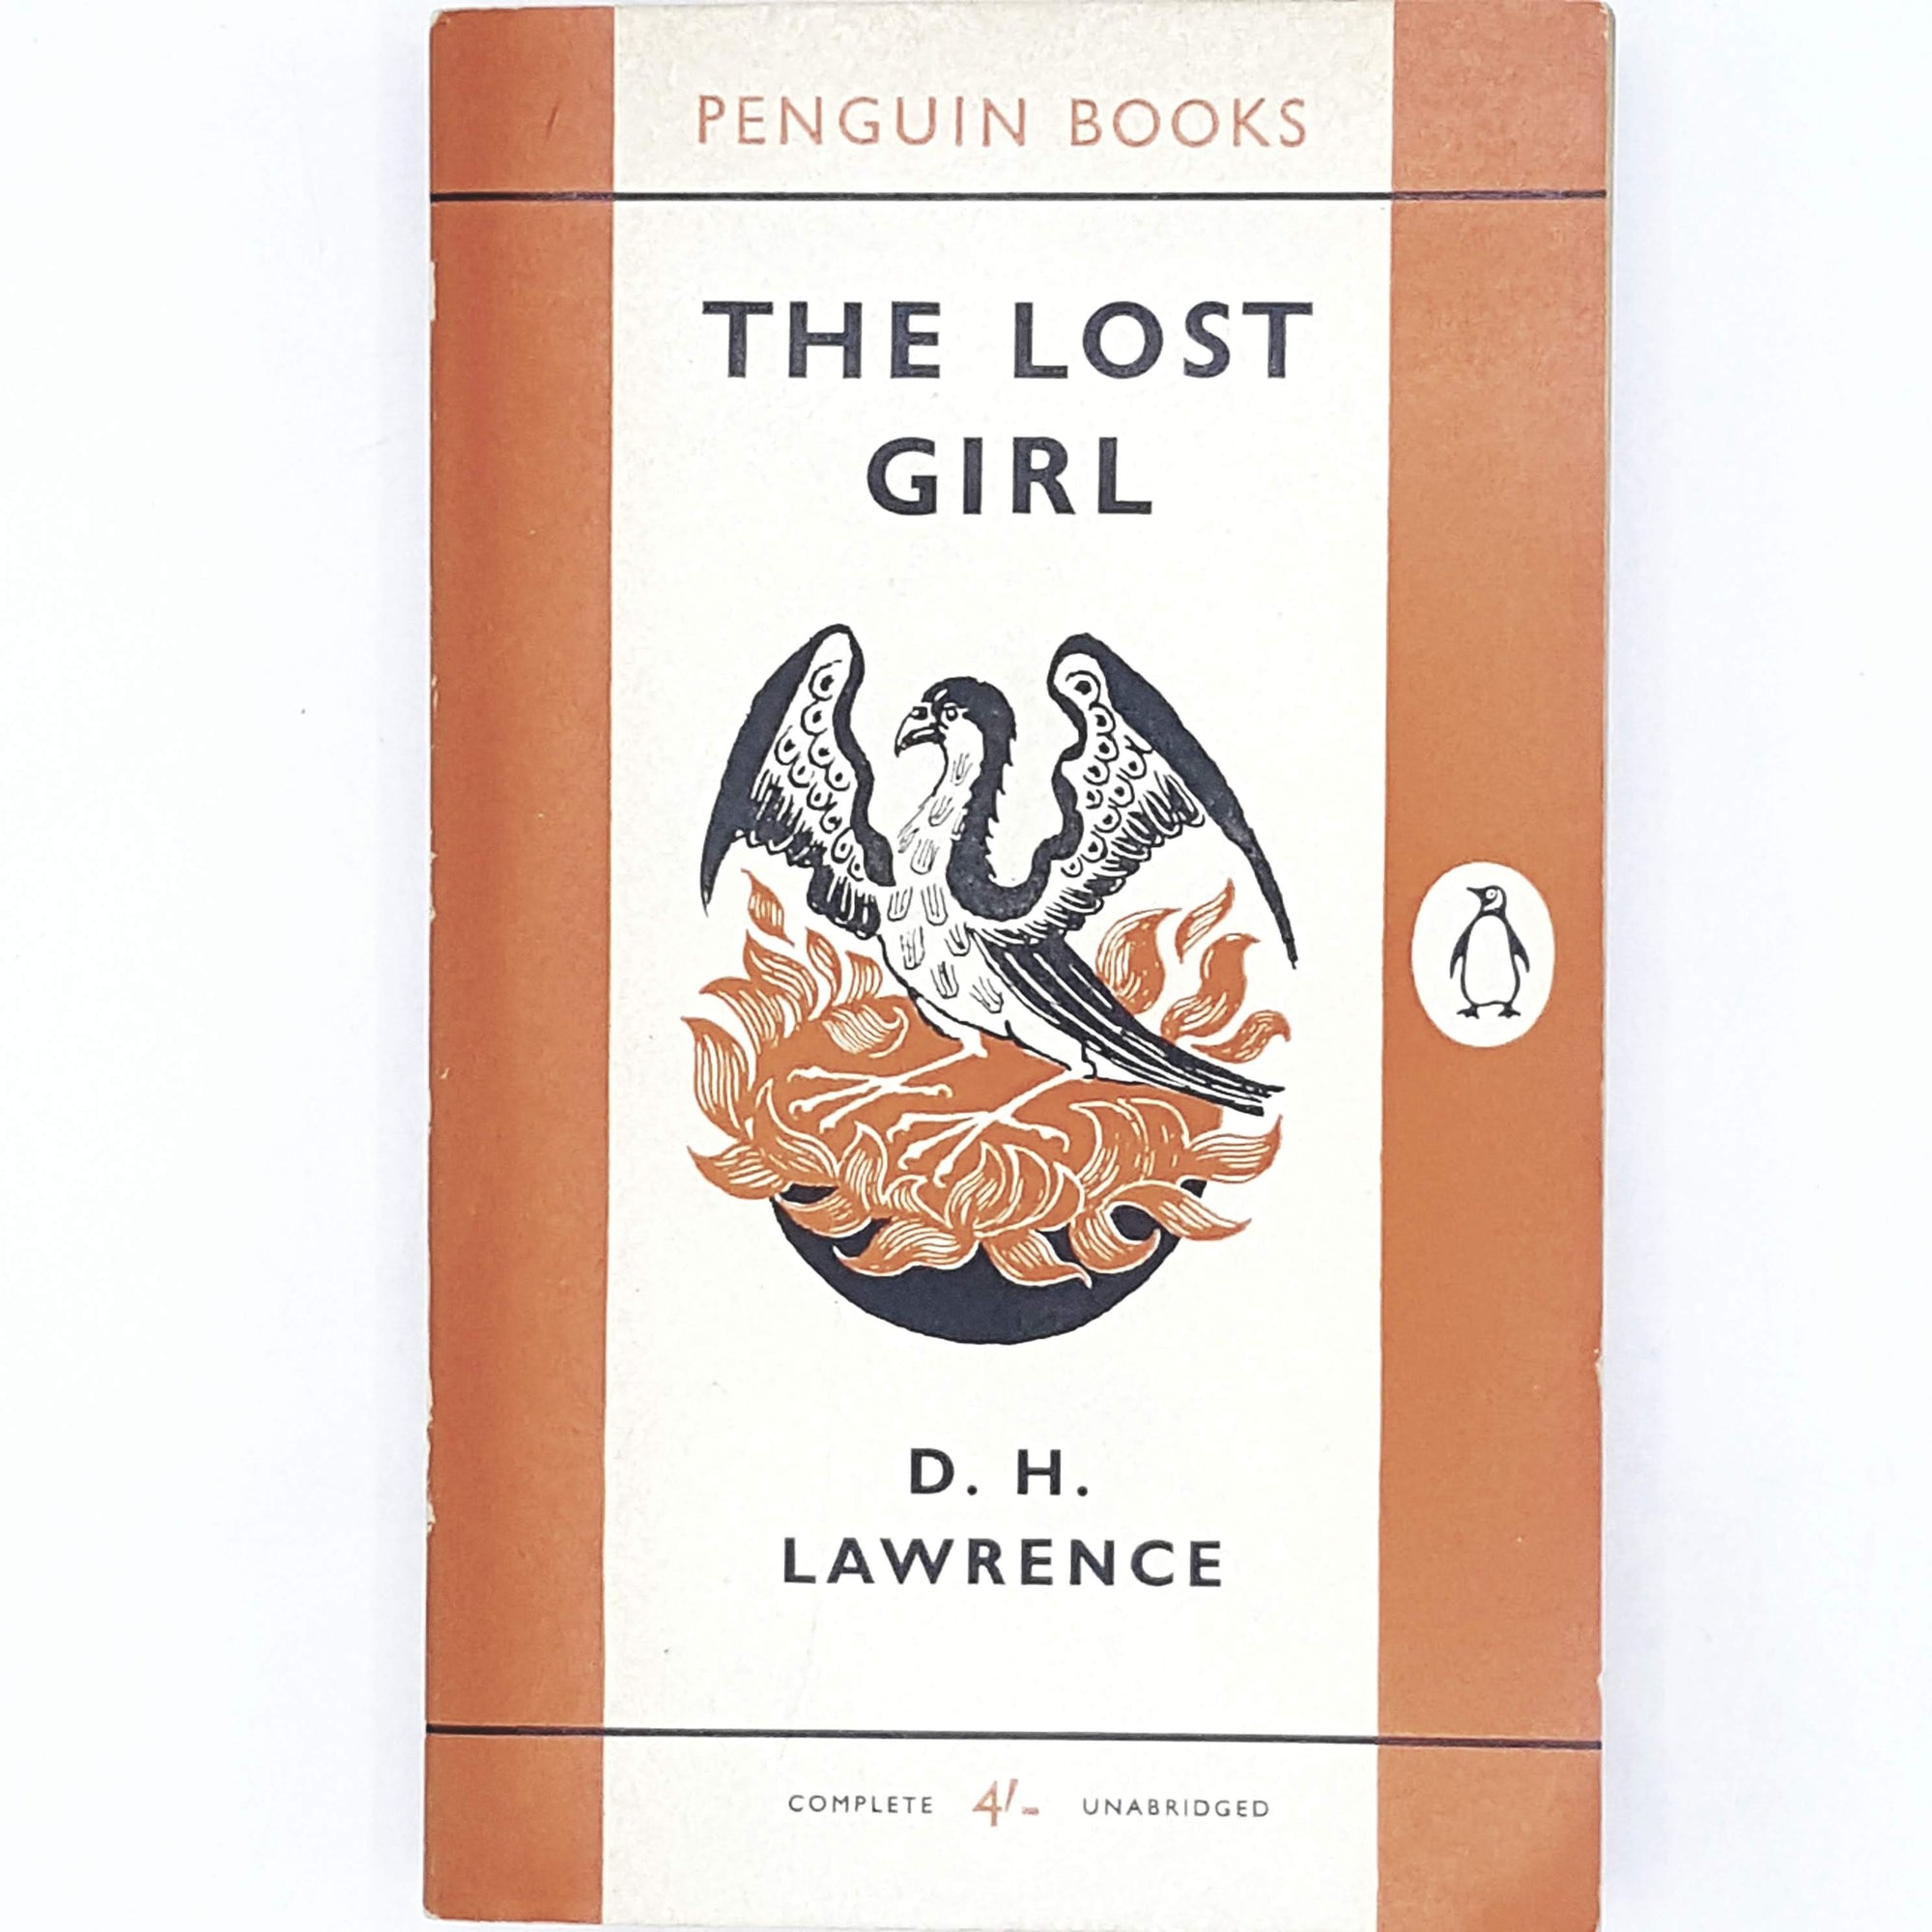 D. H. Lawrence's The Lost Girl 1960